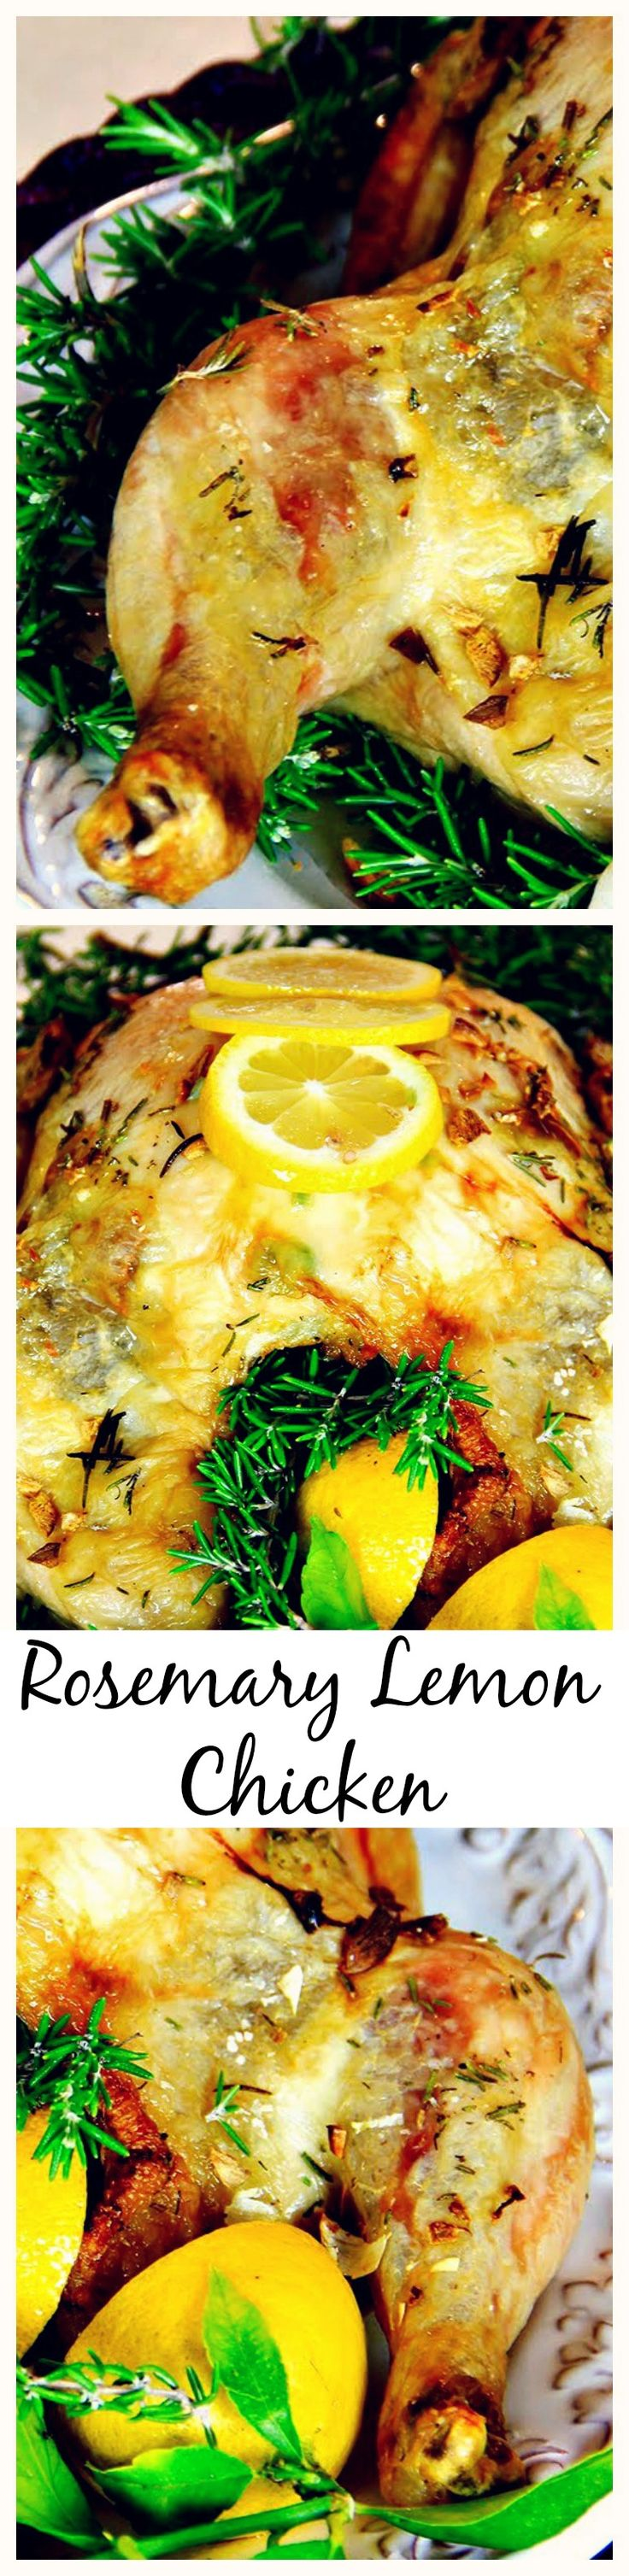 Roasted Garlic #Lemon #Rosemary #Chicken is great for any nights and also beautiful for company!